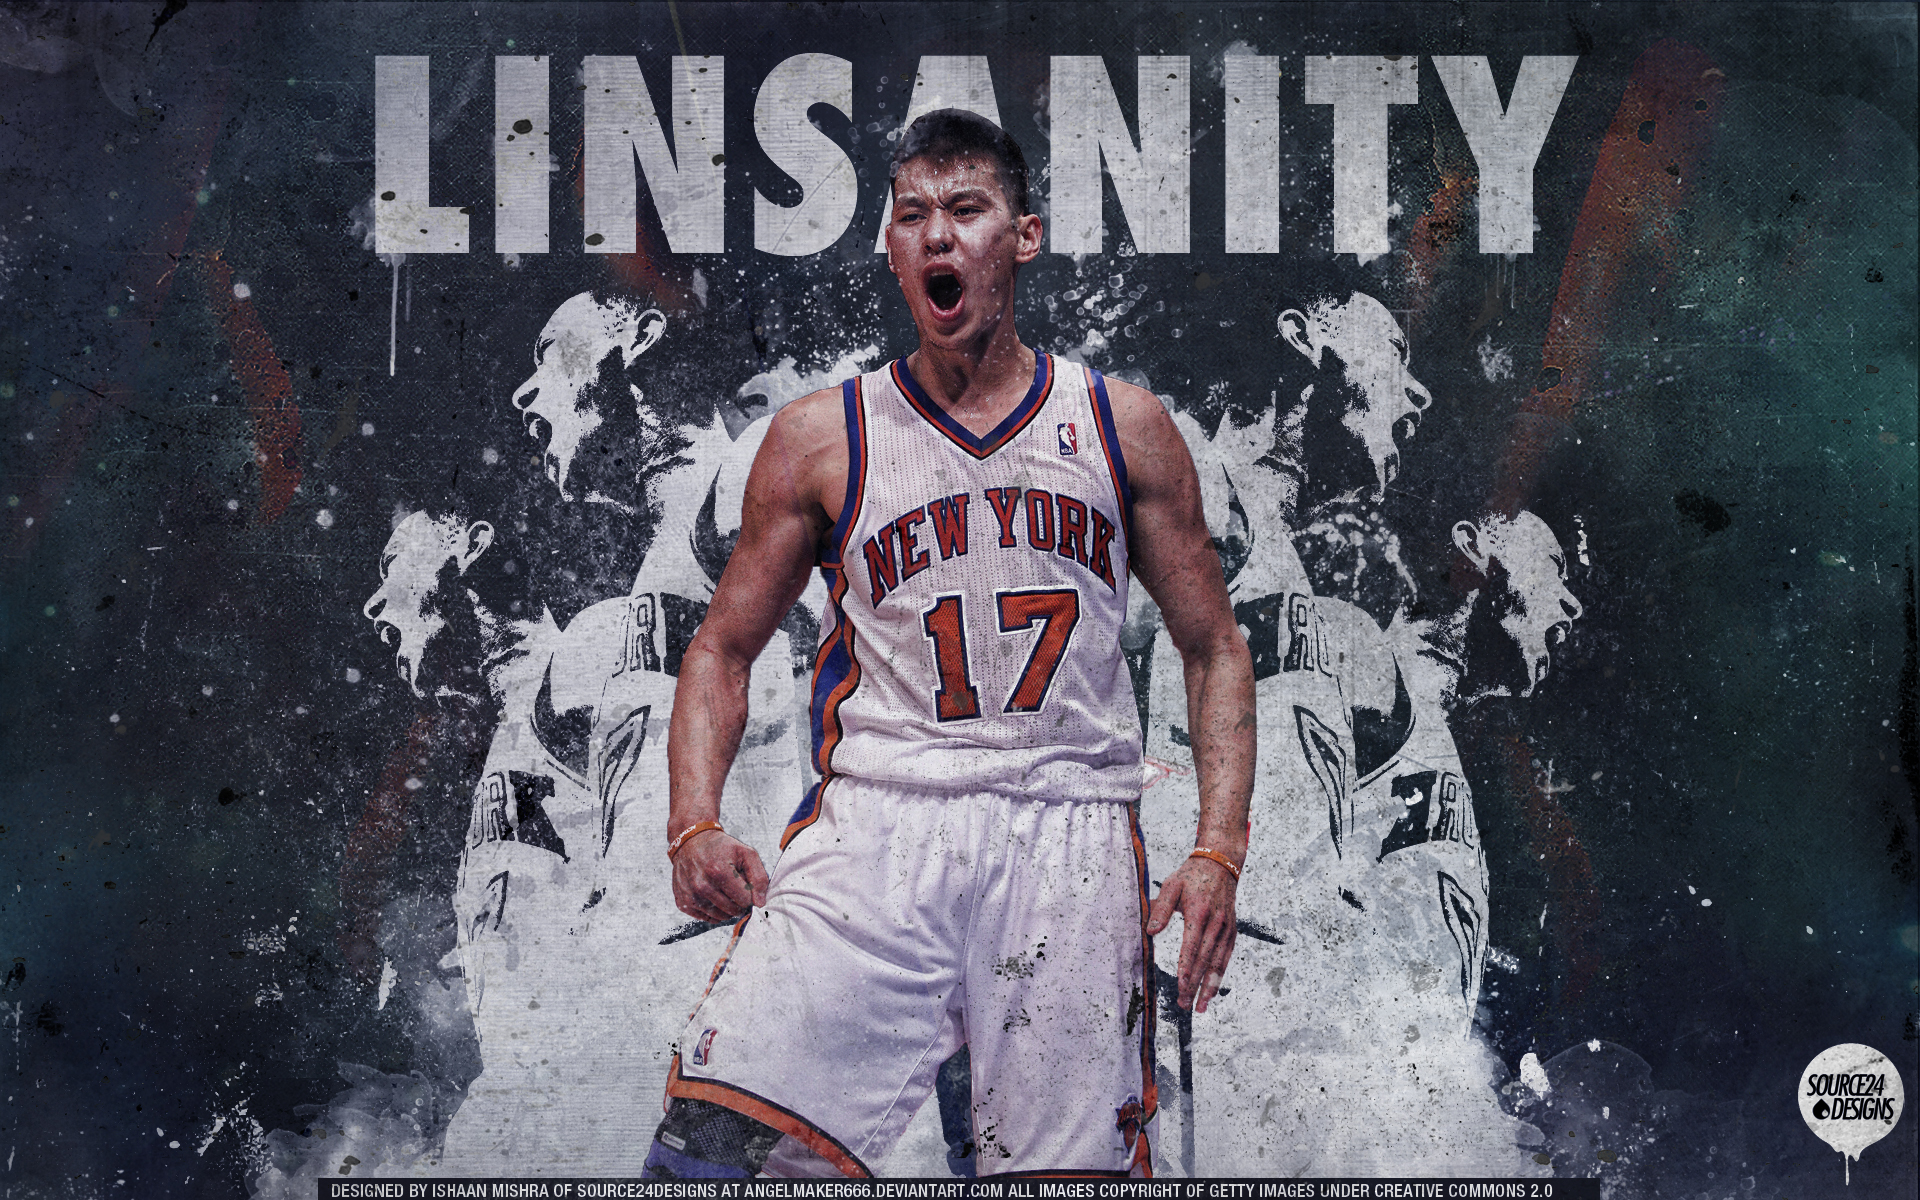 Watch Linsanity, documentary about Jeremy Lin's rise to fame, online for free!